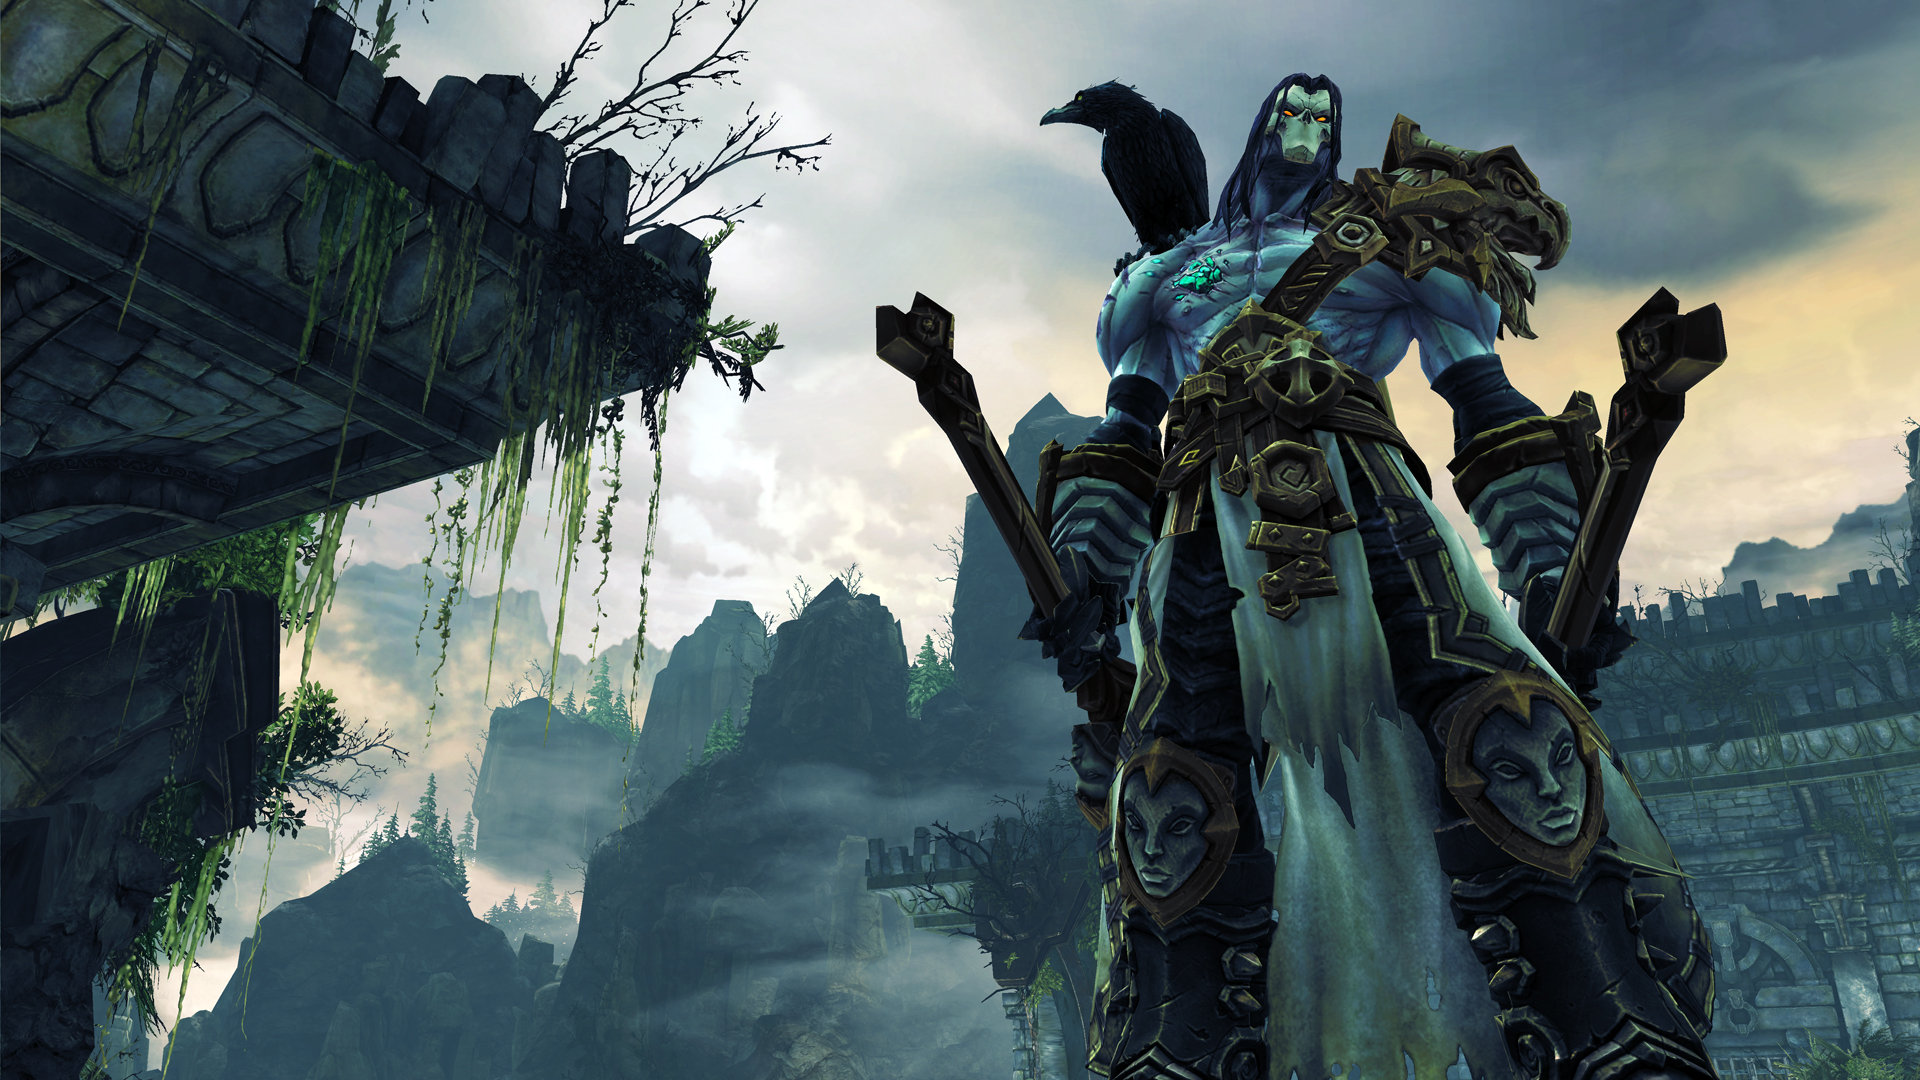 image - angel of death armor | darksiders wiki | fandom powered